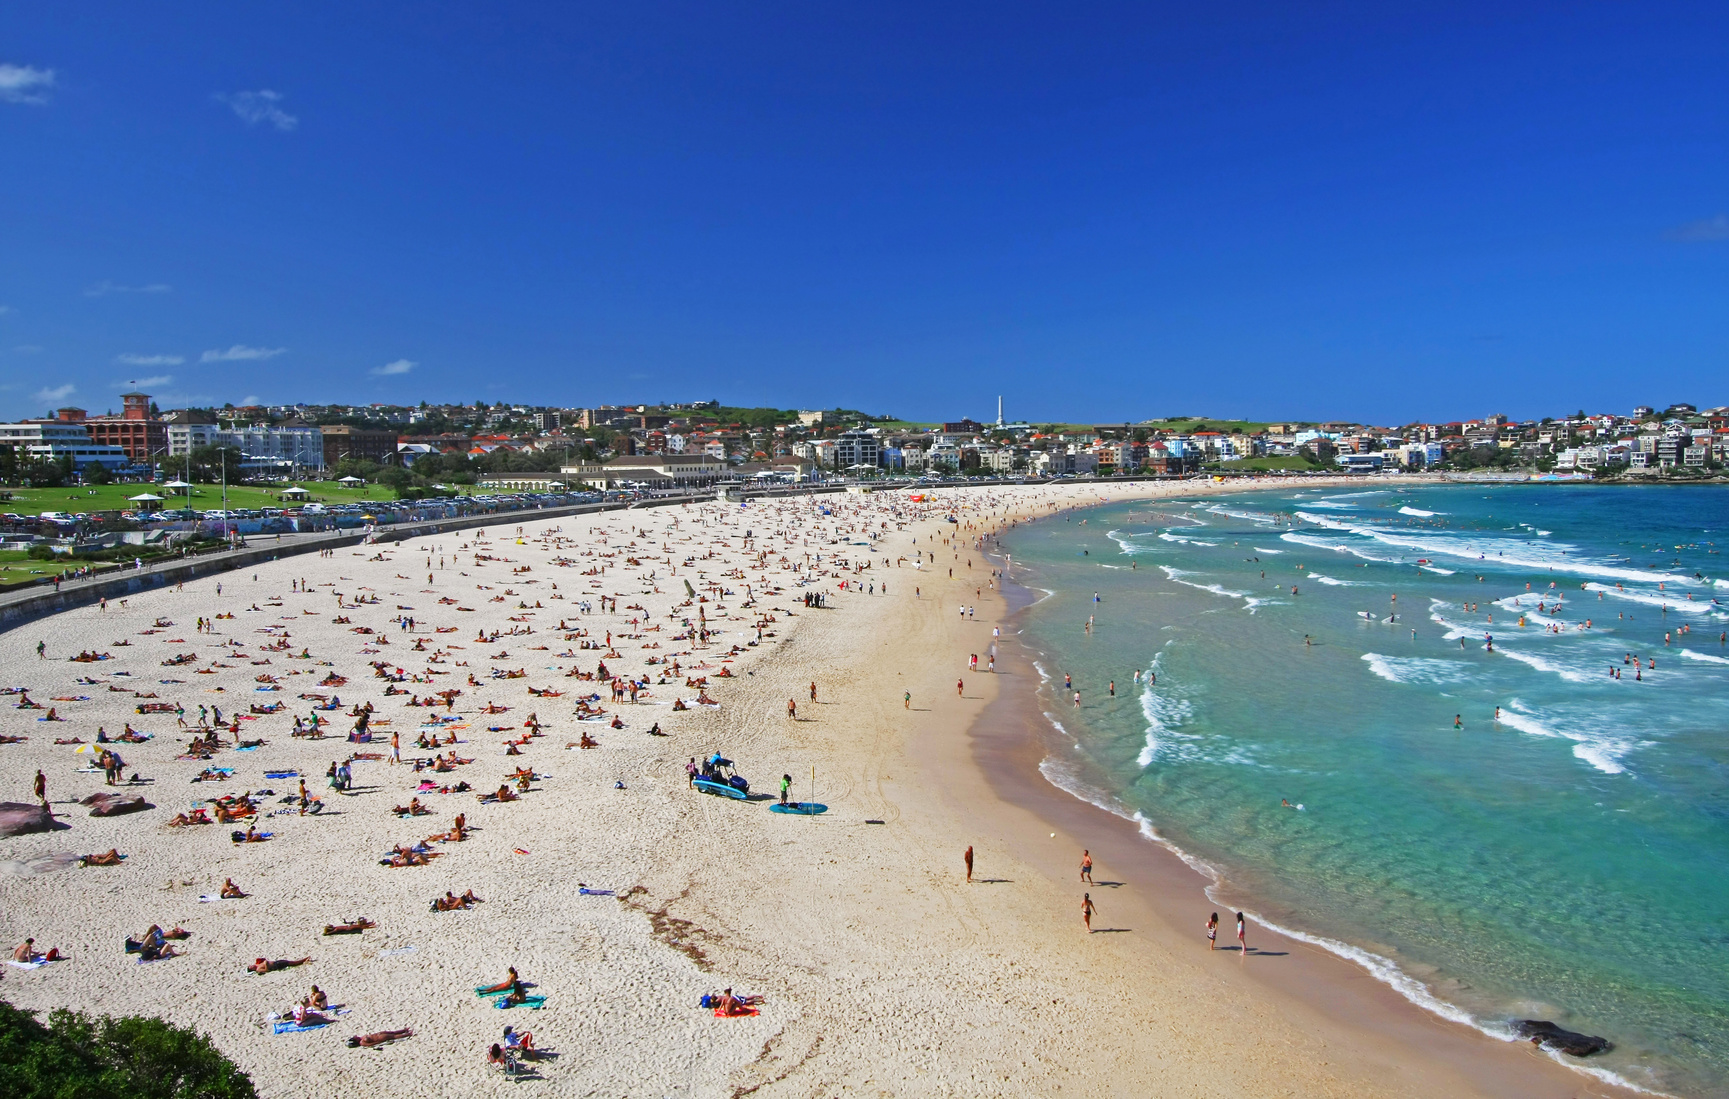 photo de bondi beach a sydney australie